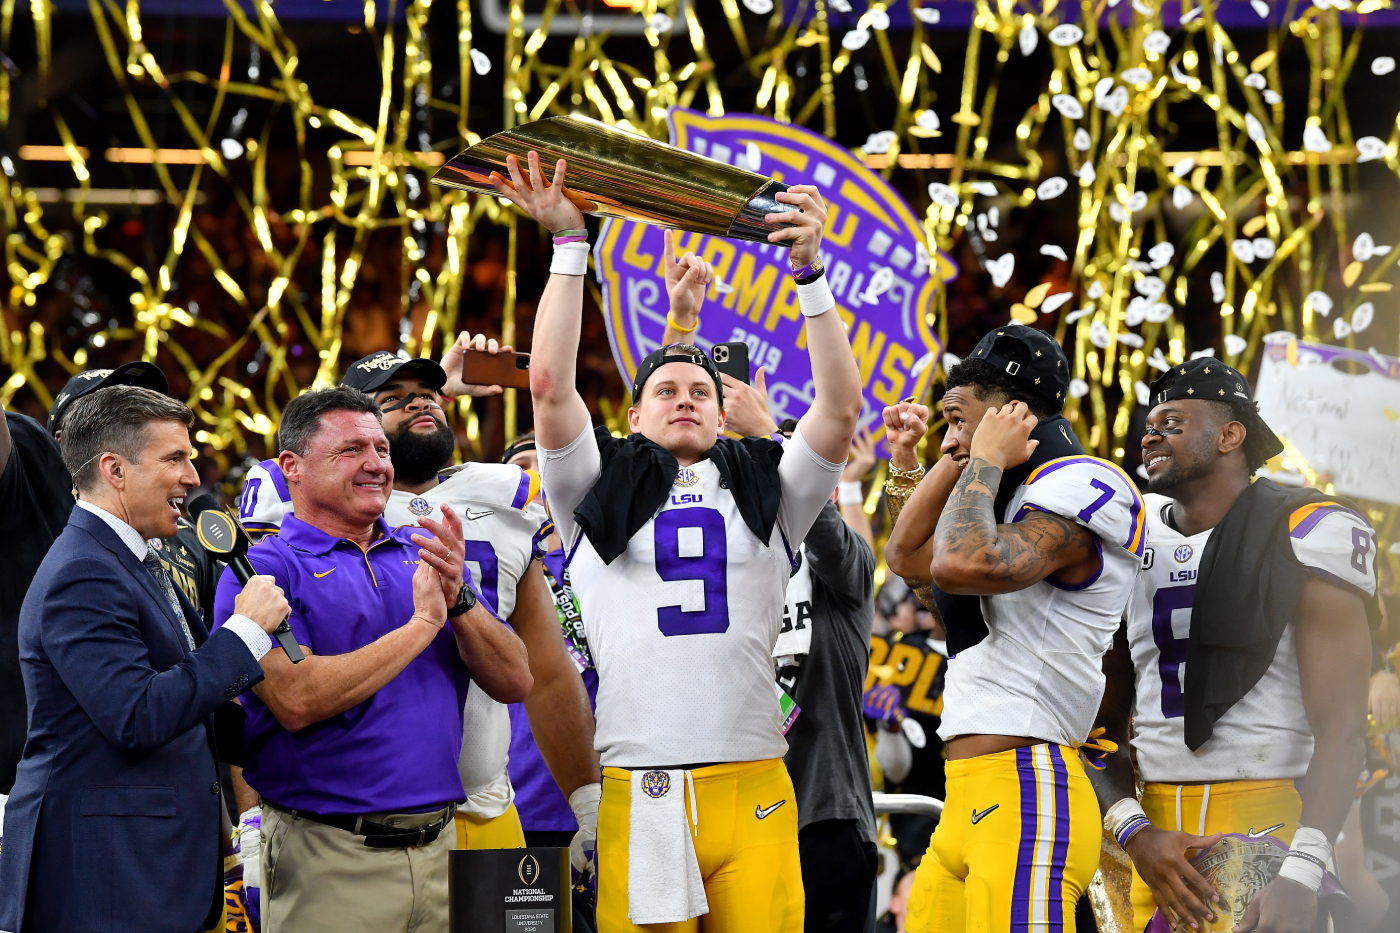 Joe Burrow and the 2019 LSU Tigers were a dominant college football team. However, the 2020 Alabama Crimson Tide were also incredible.